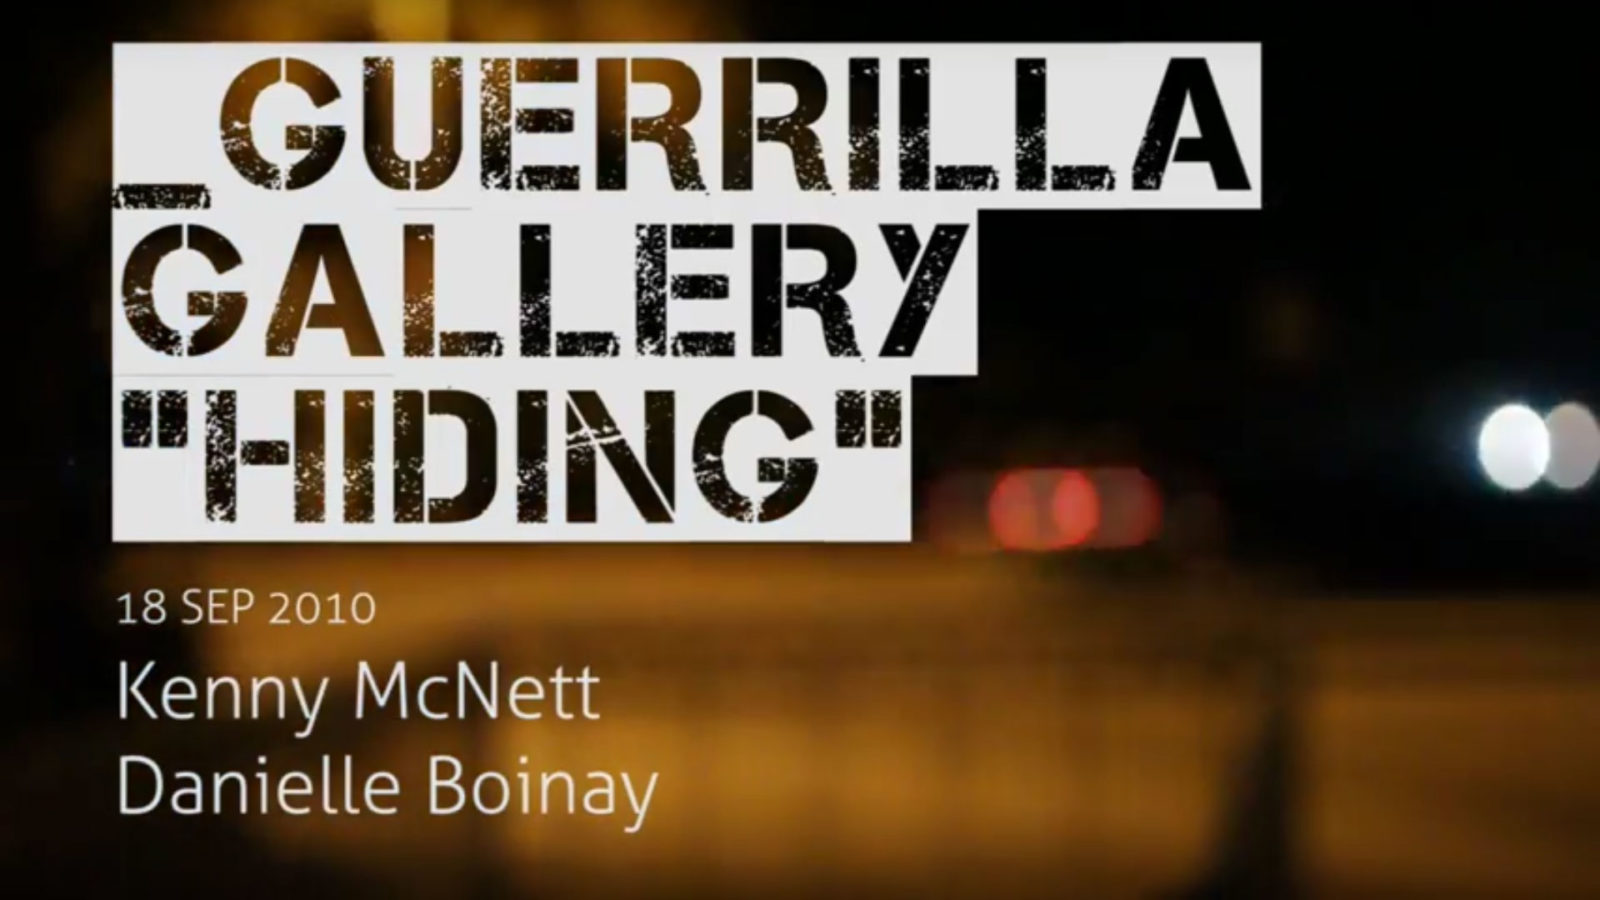 "Guerrilla Gallery ""Hiding"" 19"